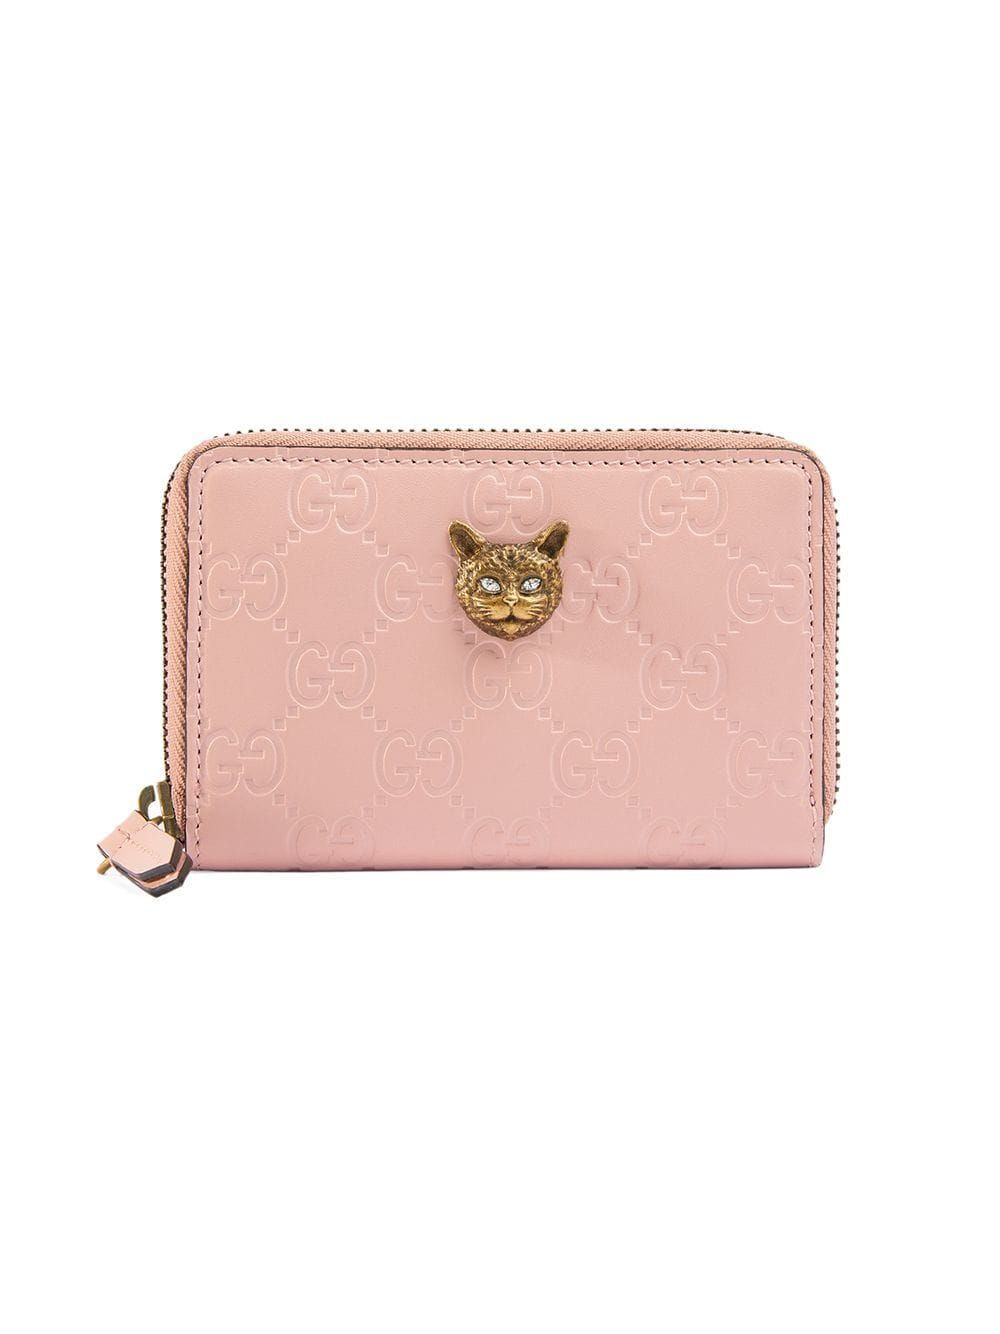 new styles 937fe 44c51 Gucci Gucci Signature card case with cat - Pink in 2019   Products ...